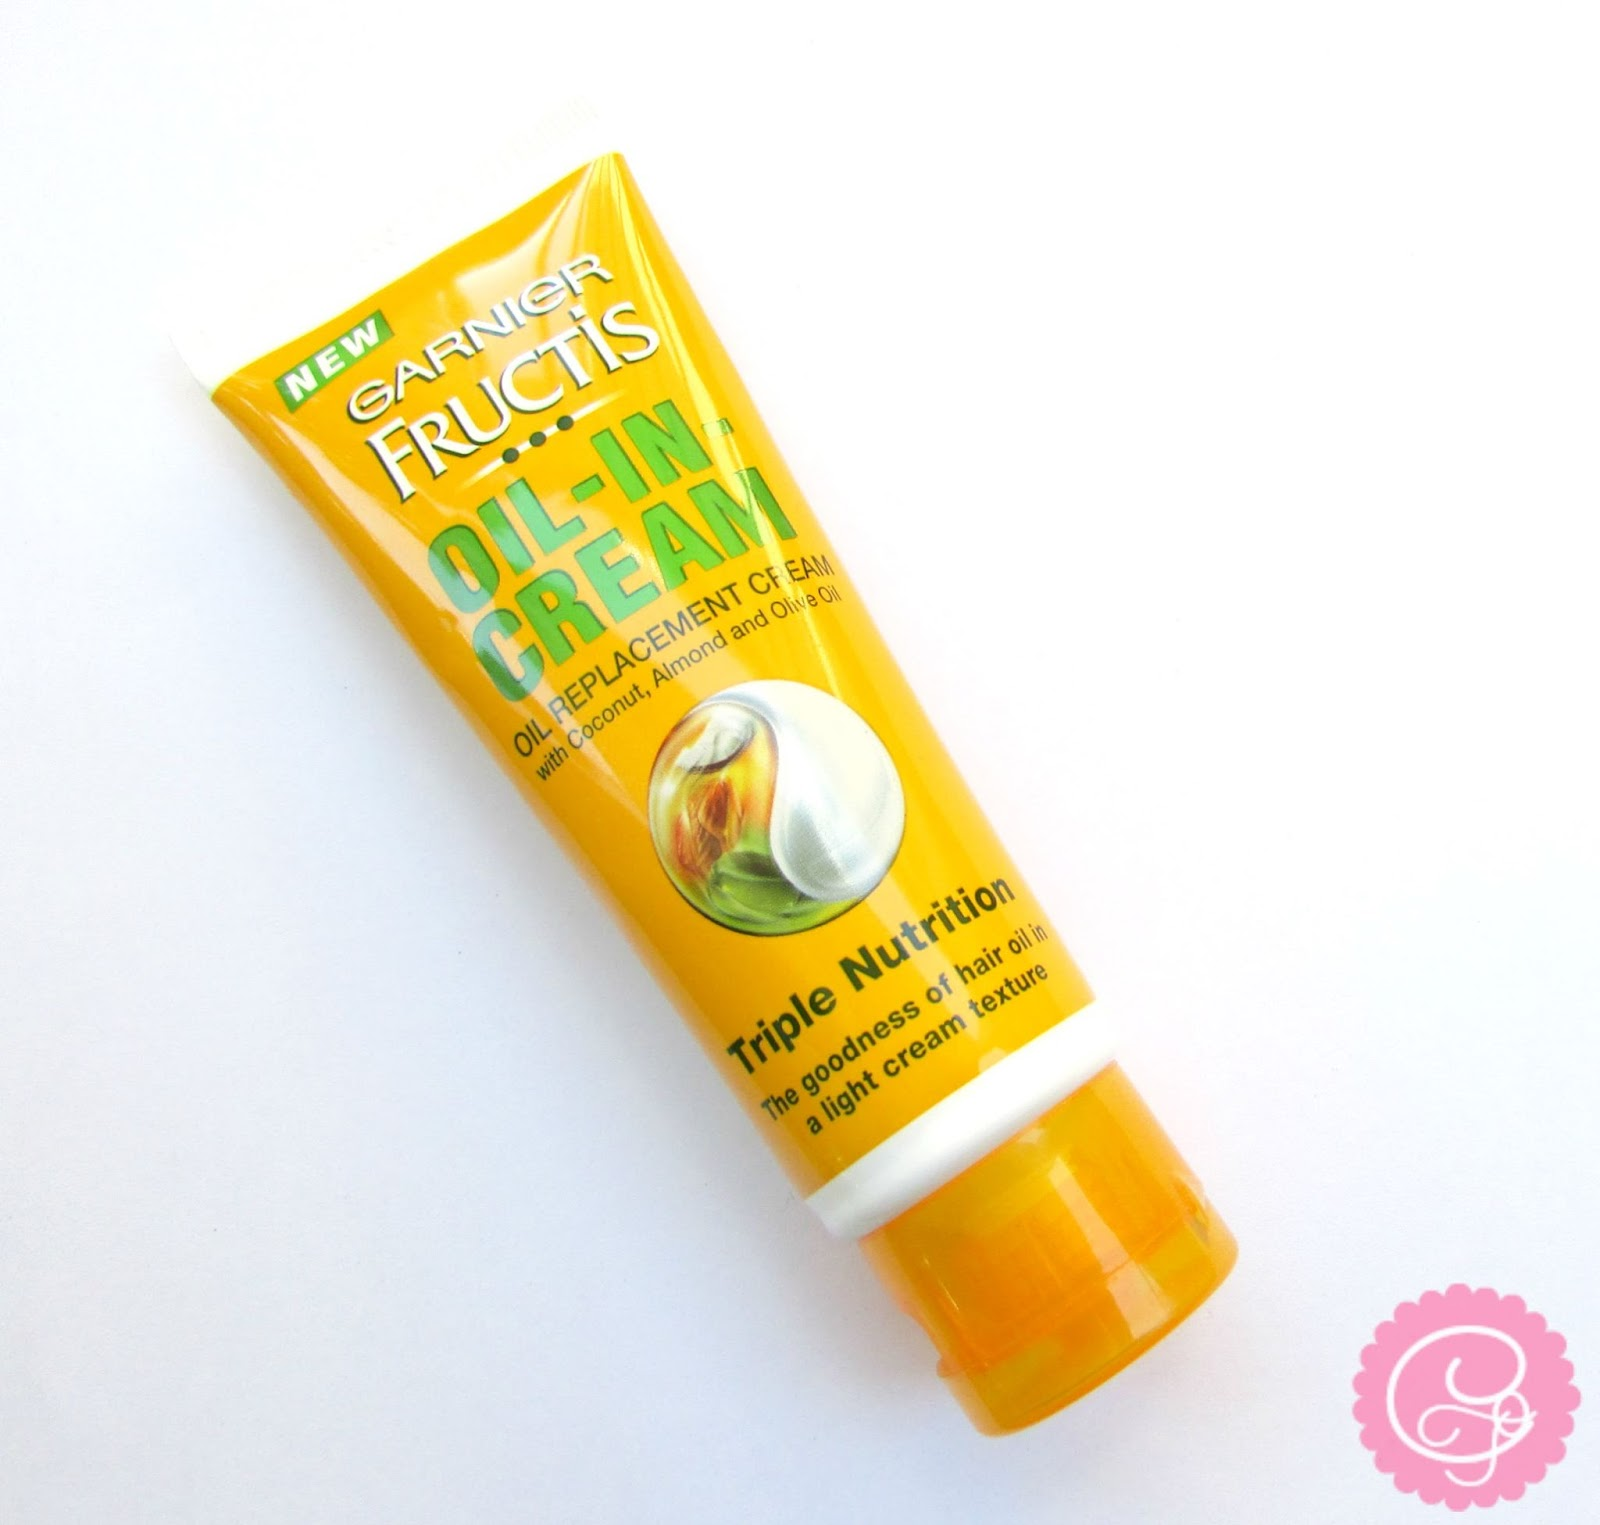 Garnier Fructis Triple Nutrition Oil-in-Cream| Review, Usage, Price